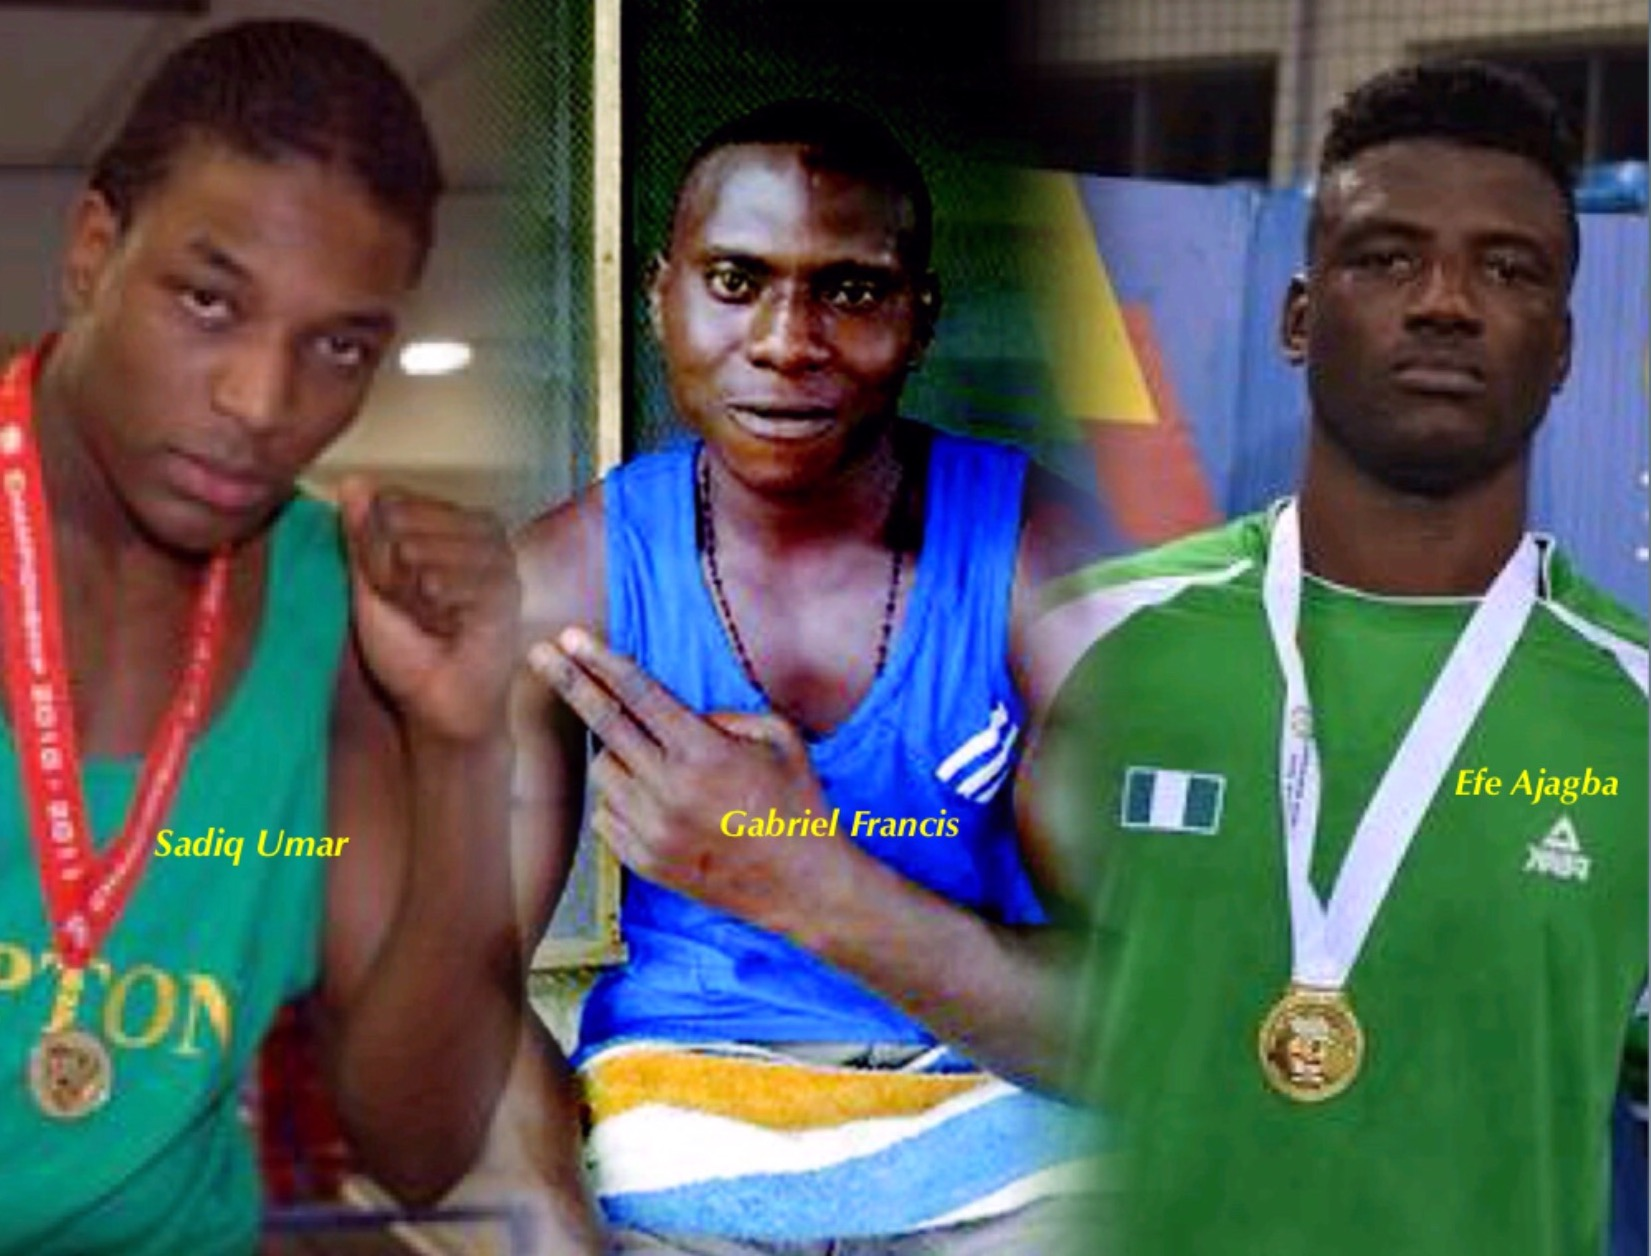 Nigeria's Sadiq Wins First Olympic Boxing Qualifier